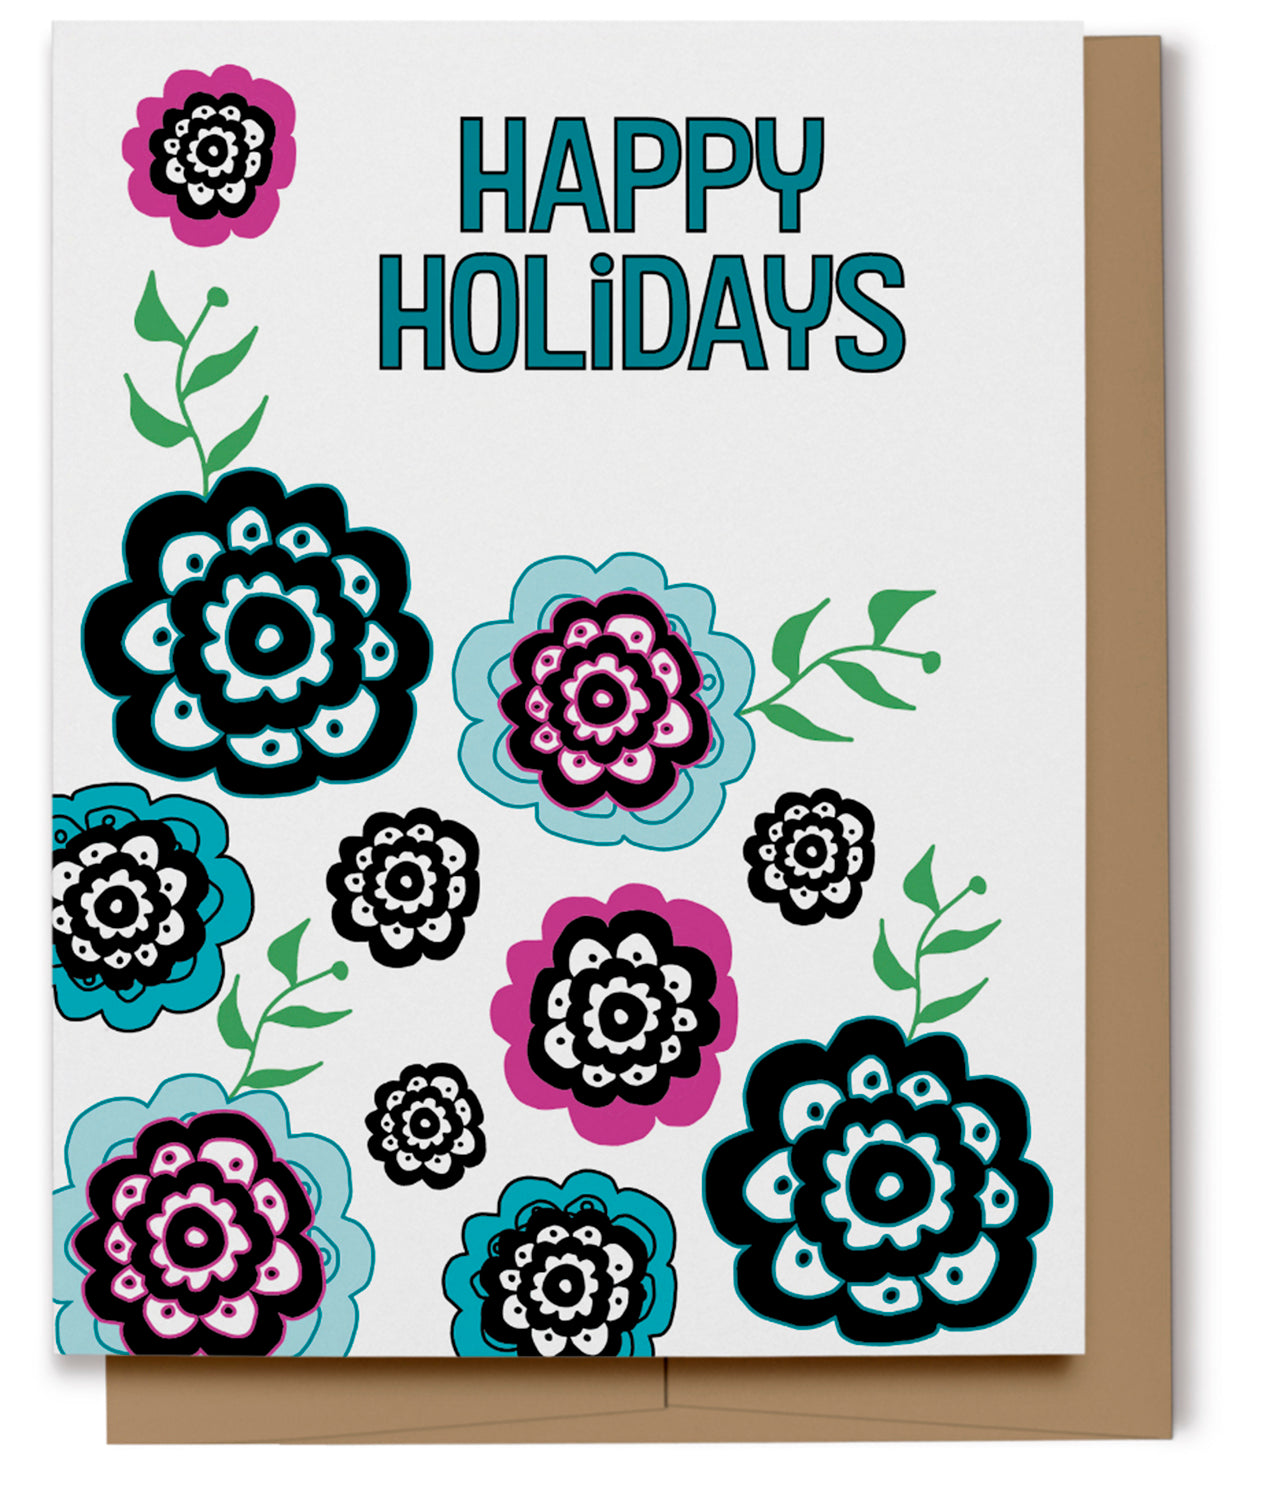 Happy Holidays Flowers Card (100% Recycled)